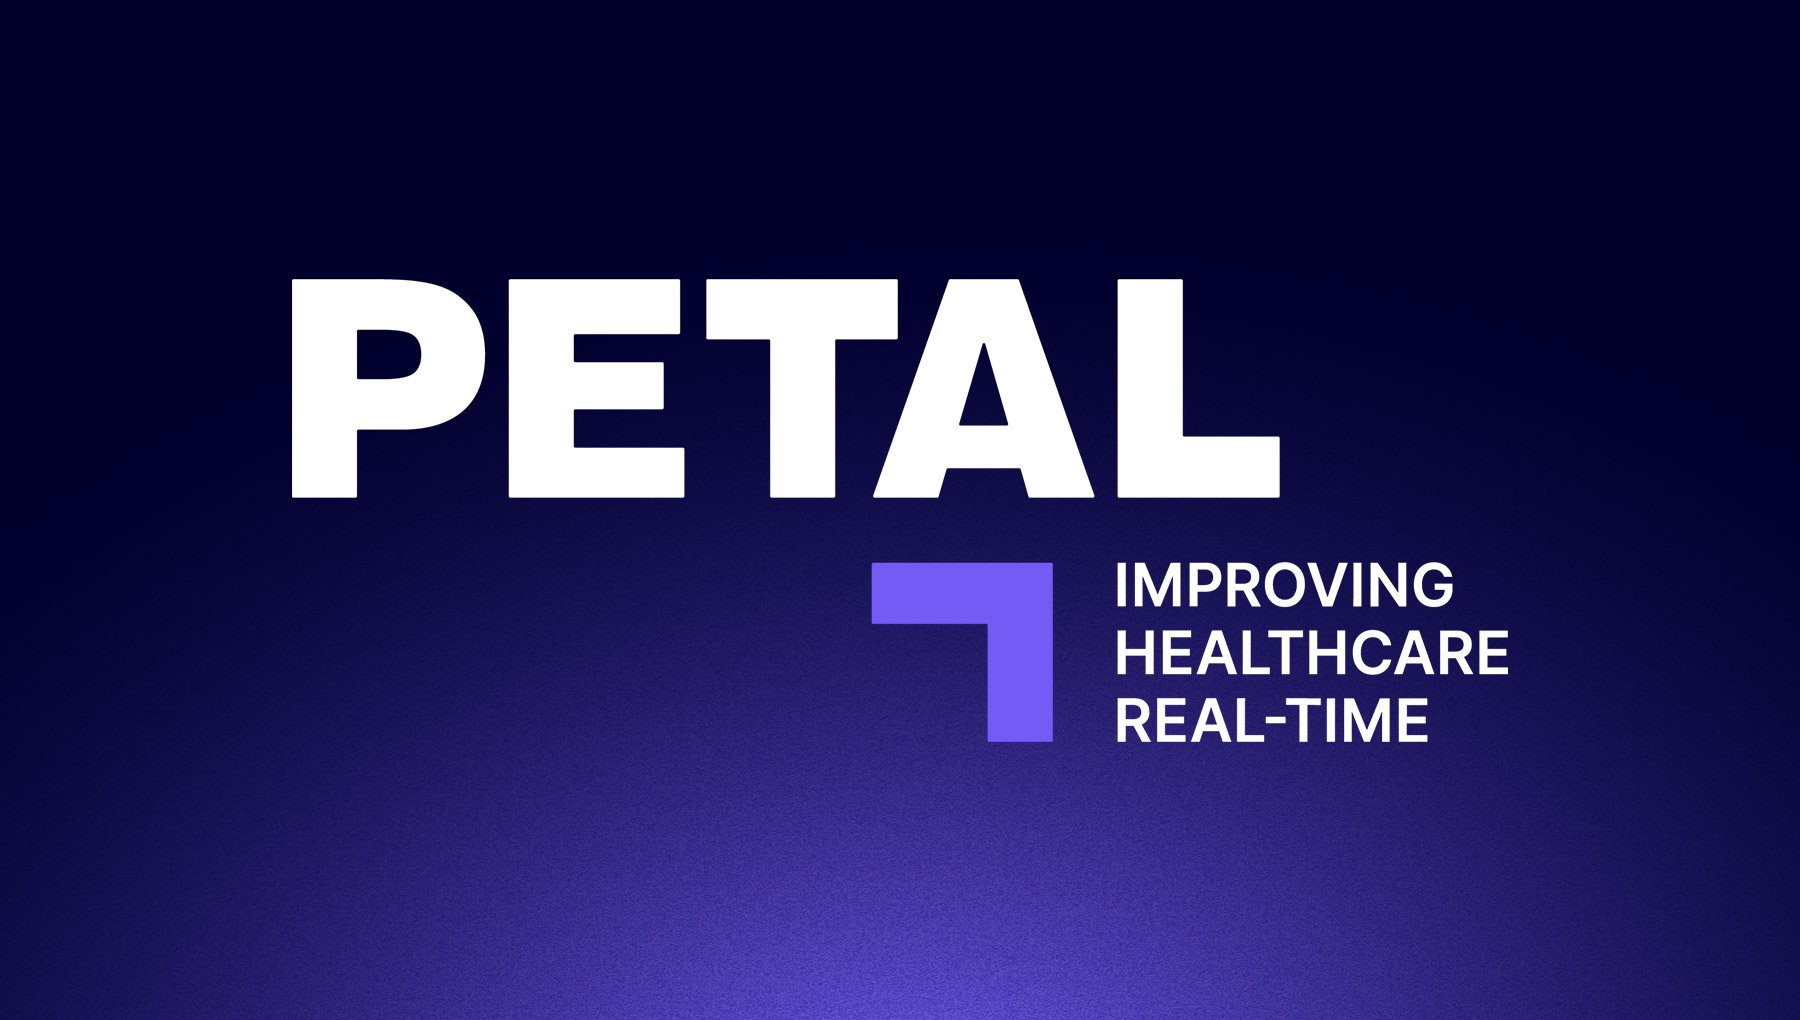 Petal Improving Healthcare Real-Time